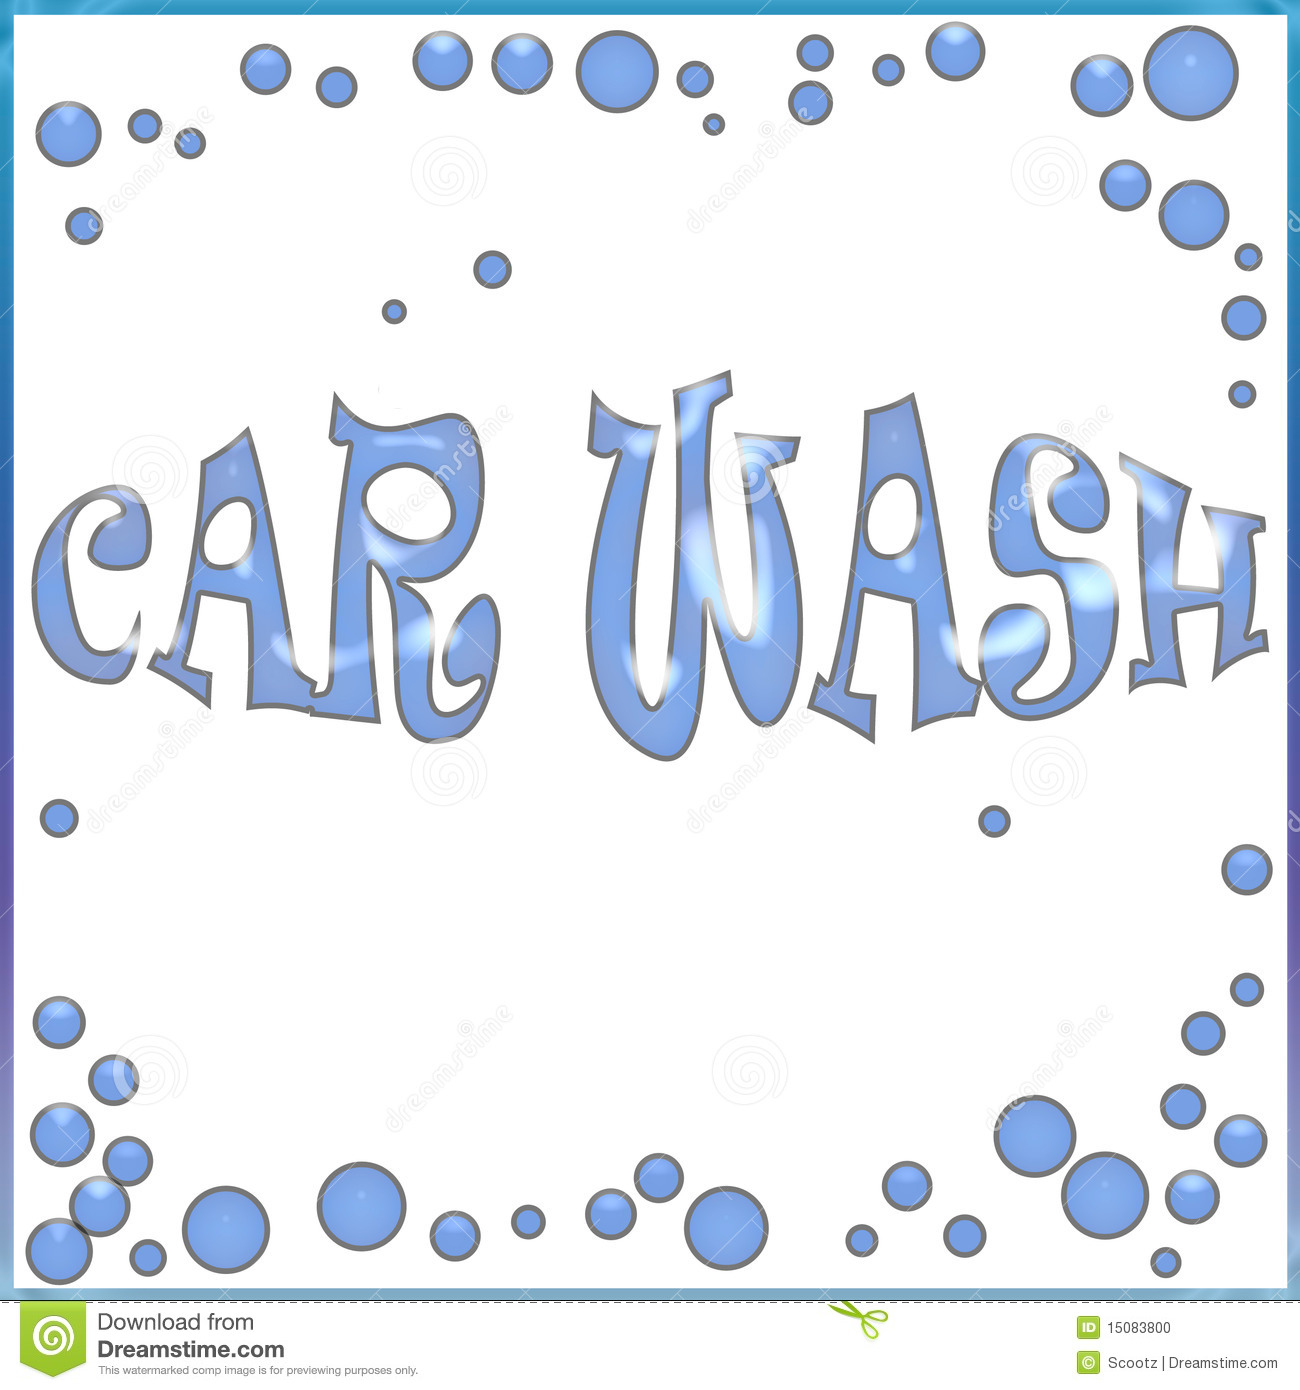 Car Wash Bubbles Clip Art   Freequotesclub Com